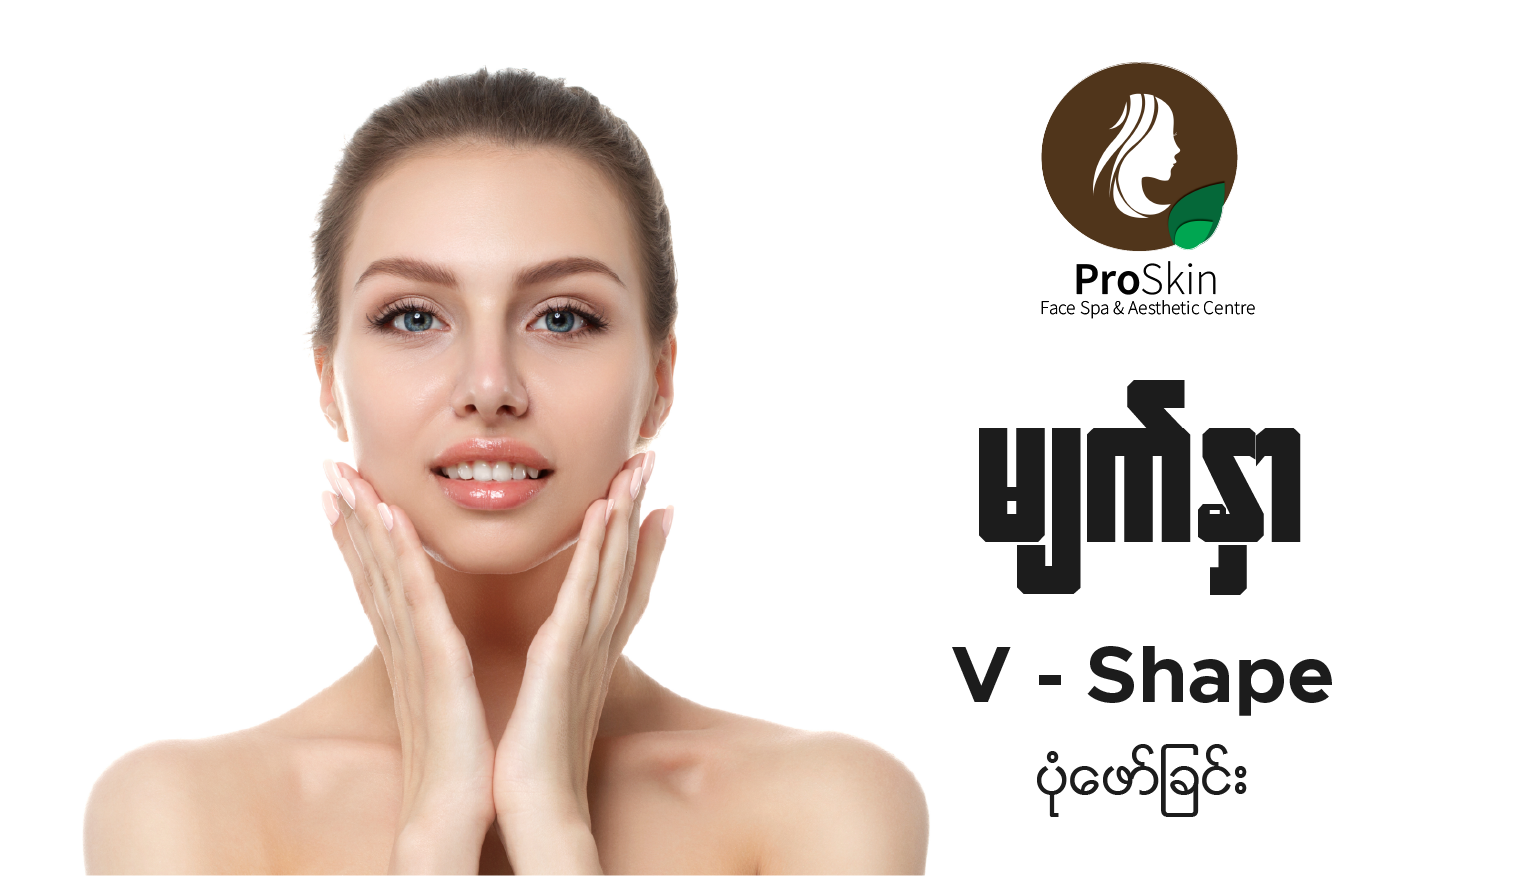 30% Discount on Pro Aesthetic Treatments and 20% Discount on Pro Facial & Body Treatments